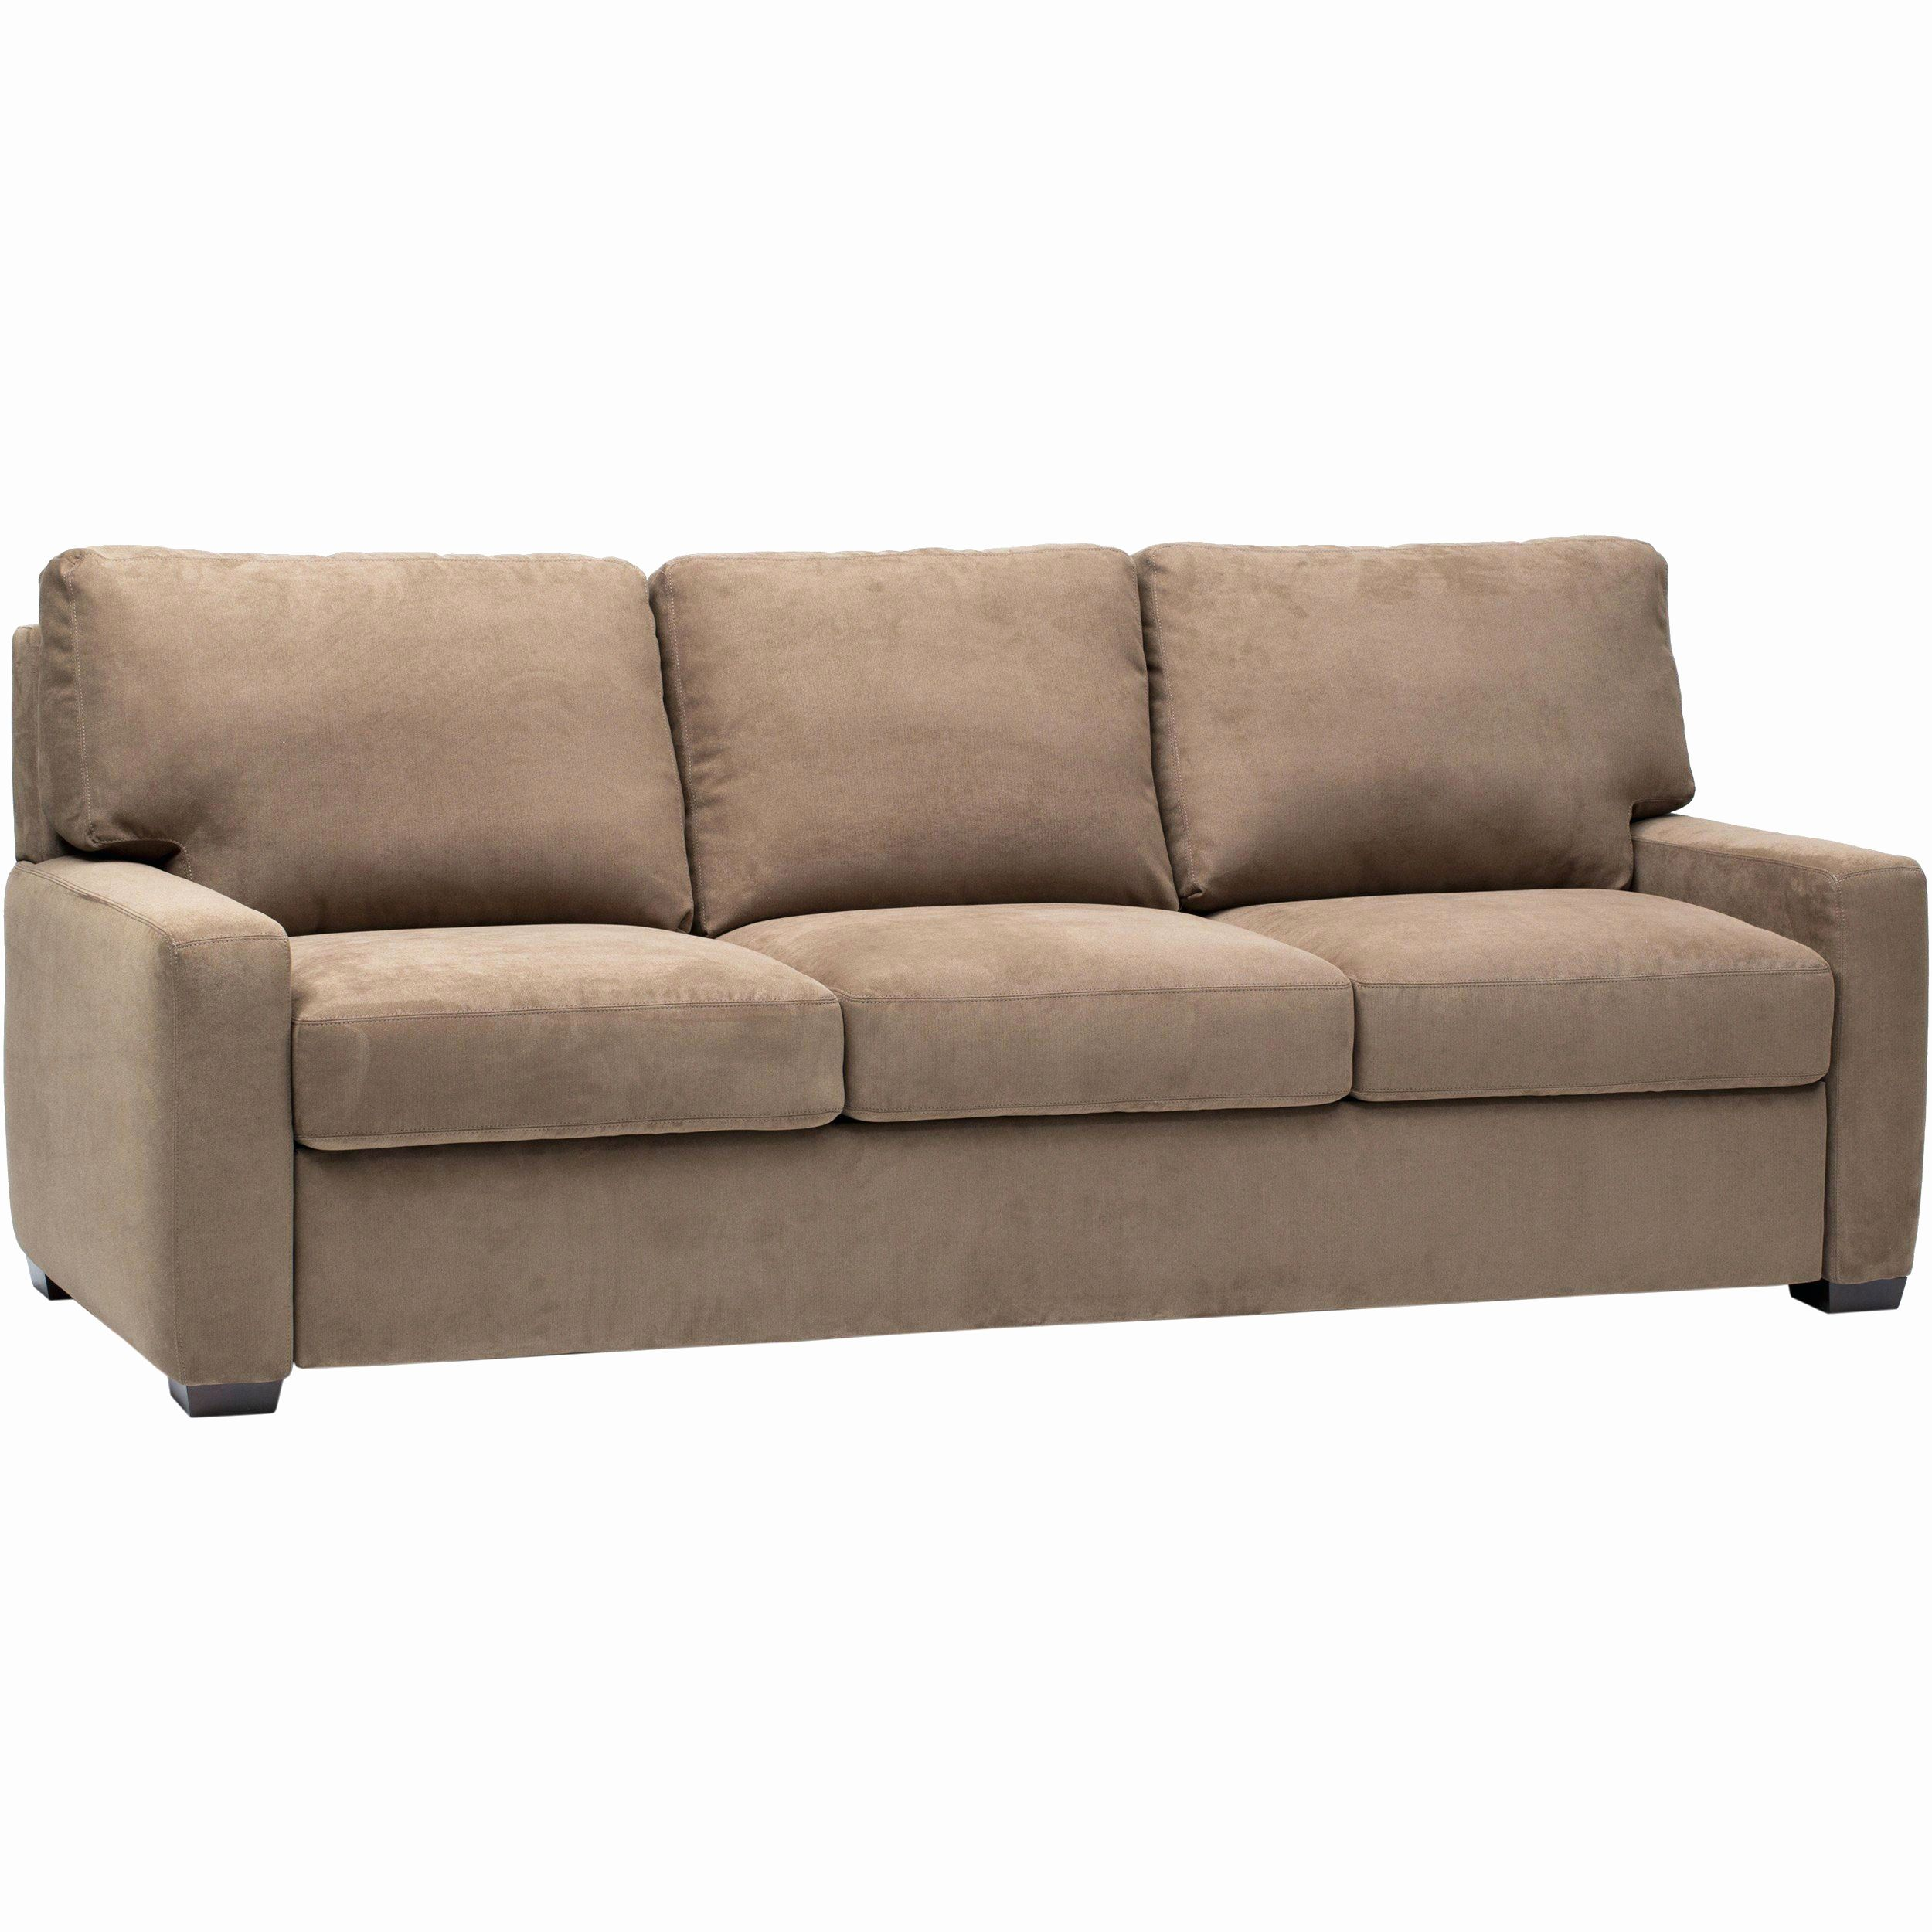 Unique American Leather Sleeper Sofa Reviews Art American Leather Sleeper  Sofa Reviews Elegant American Leather Sofa